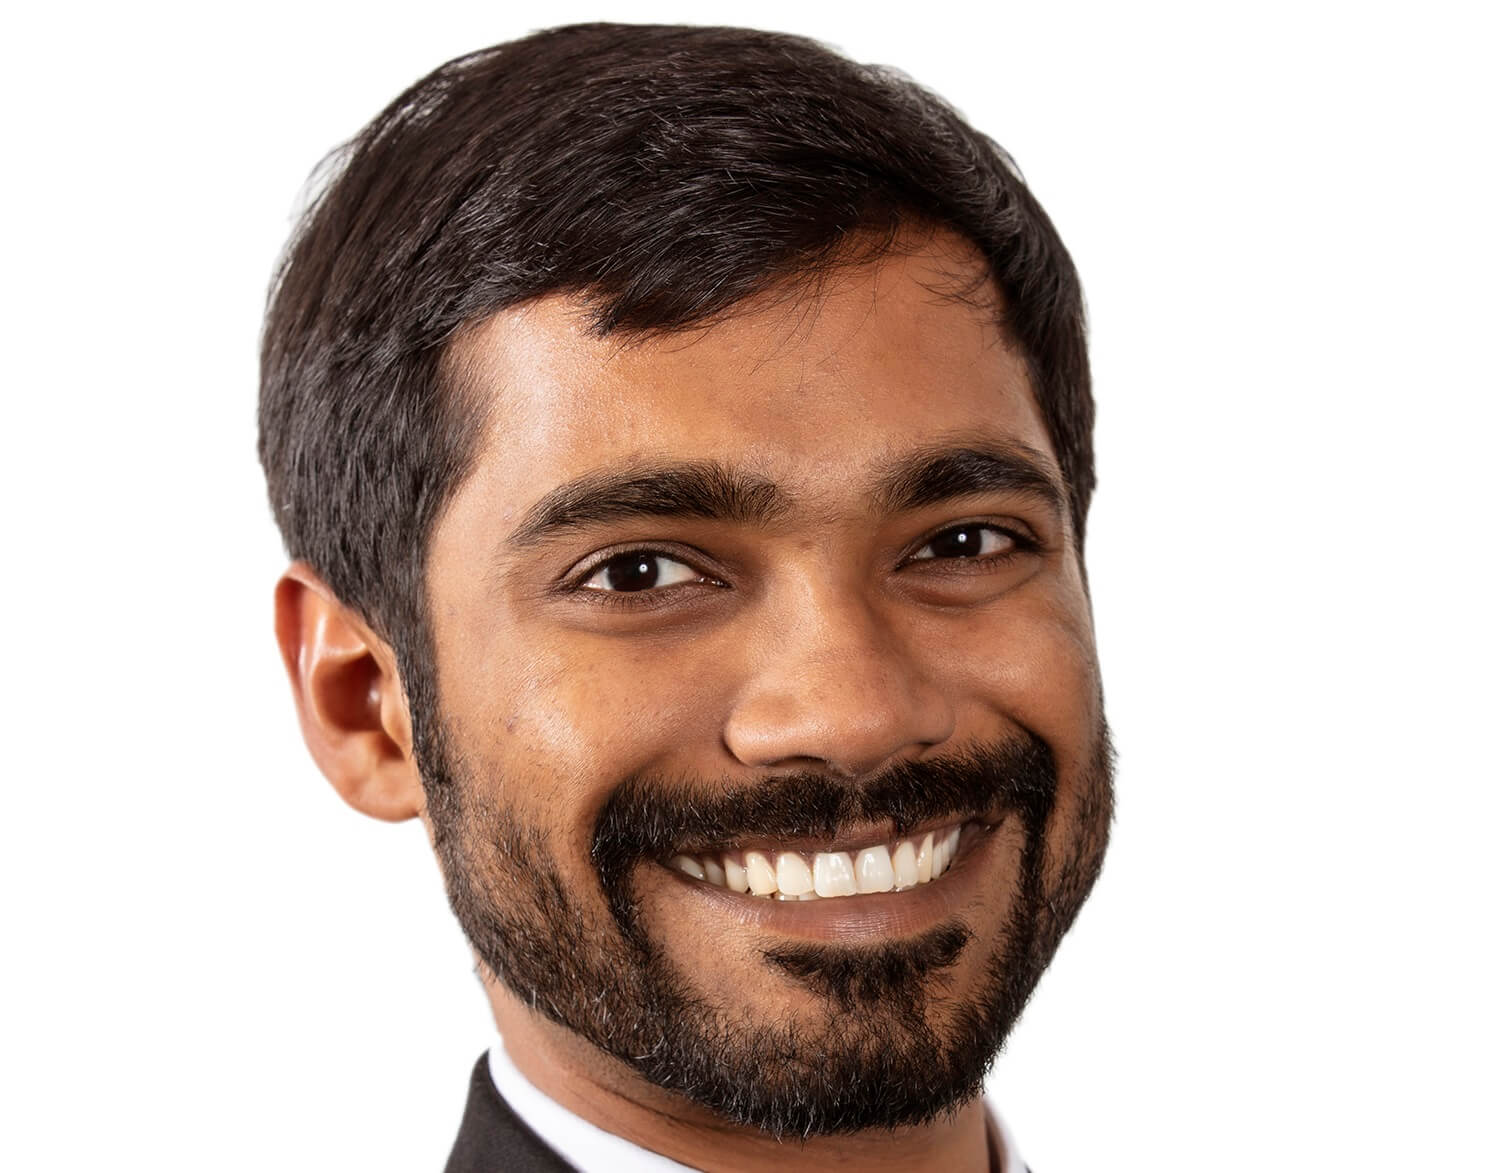 How an Indian MBA grad became PwC Ireland's manager of technology and digital consulting